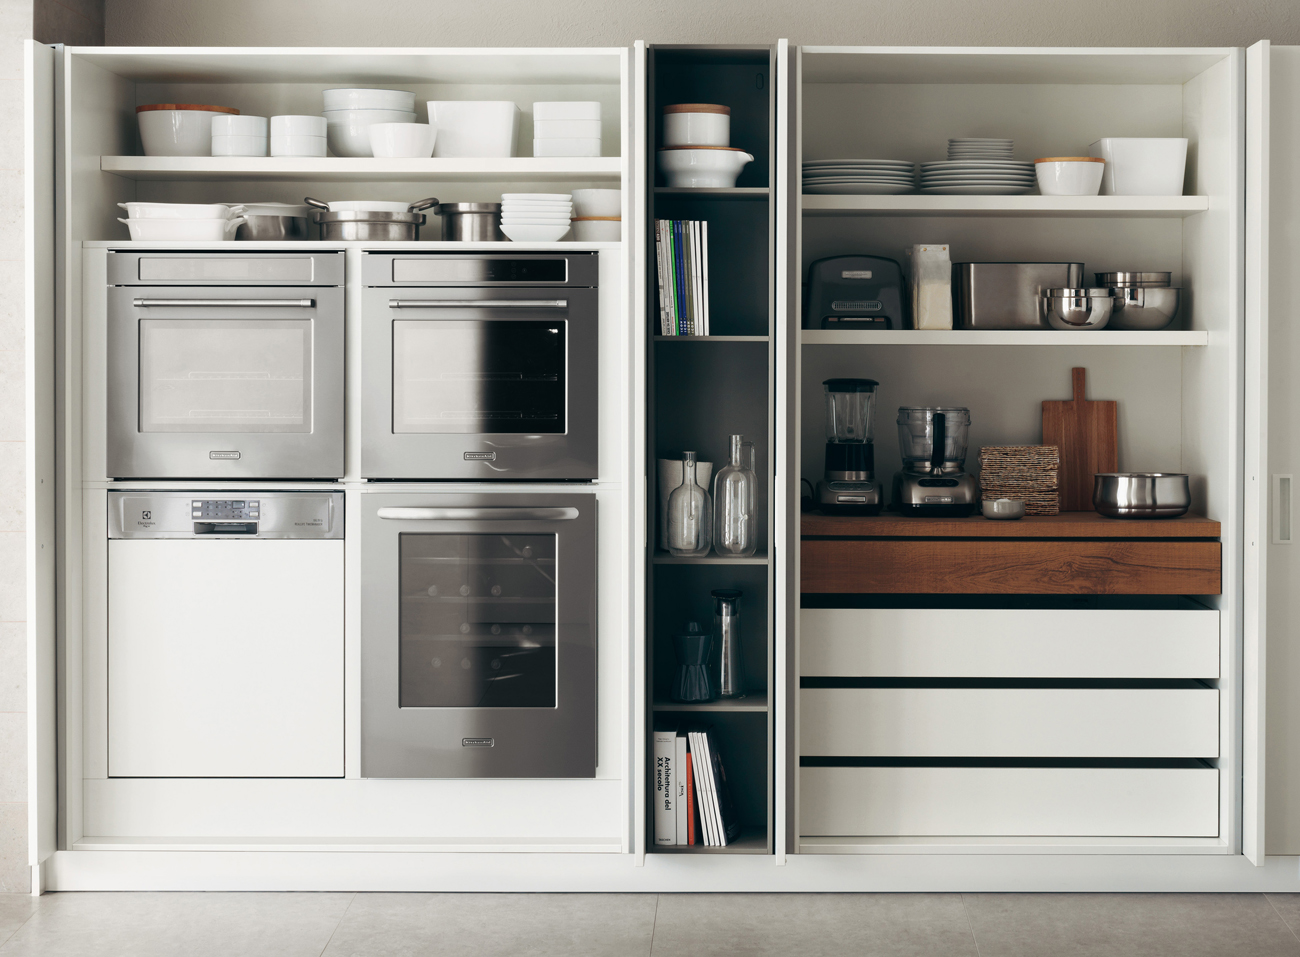 Best Idee Cucine Piccole Gallery - Home Ideas - tyger.us